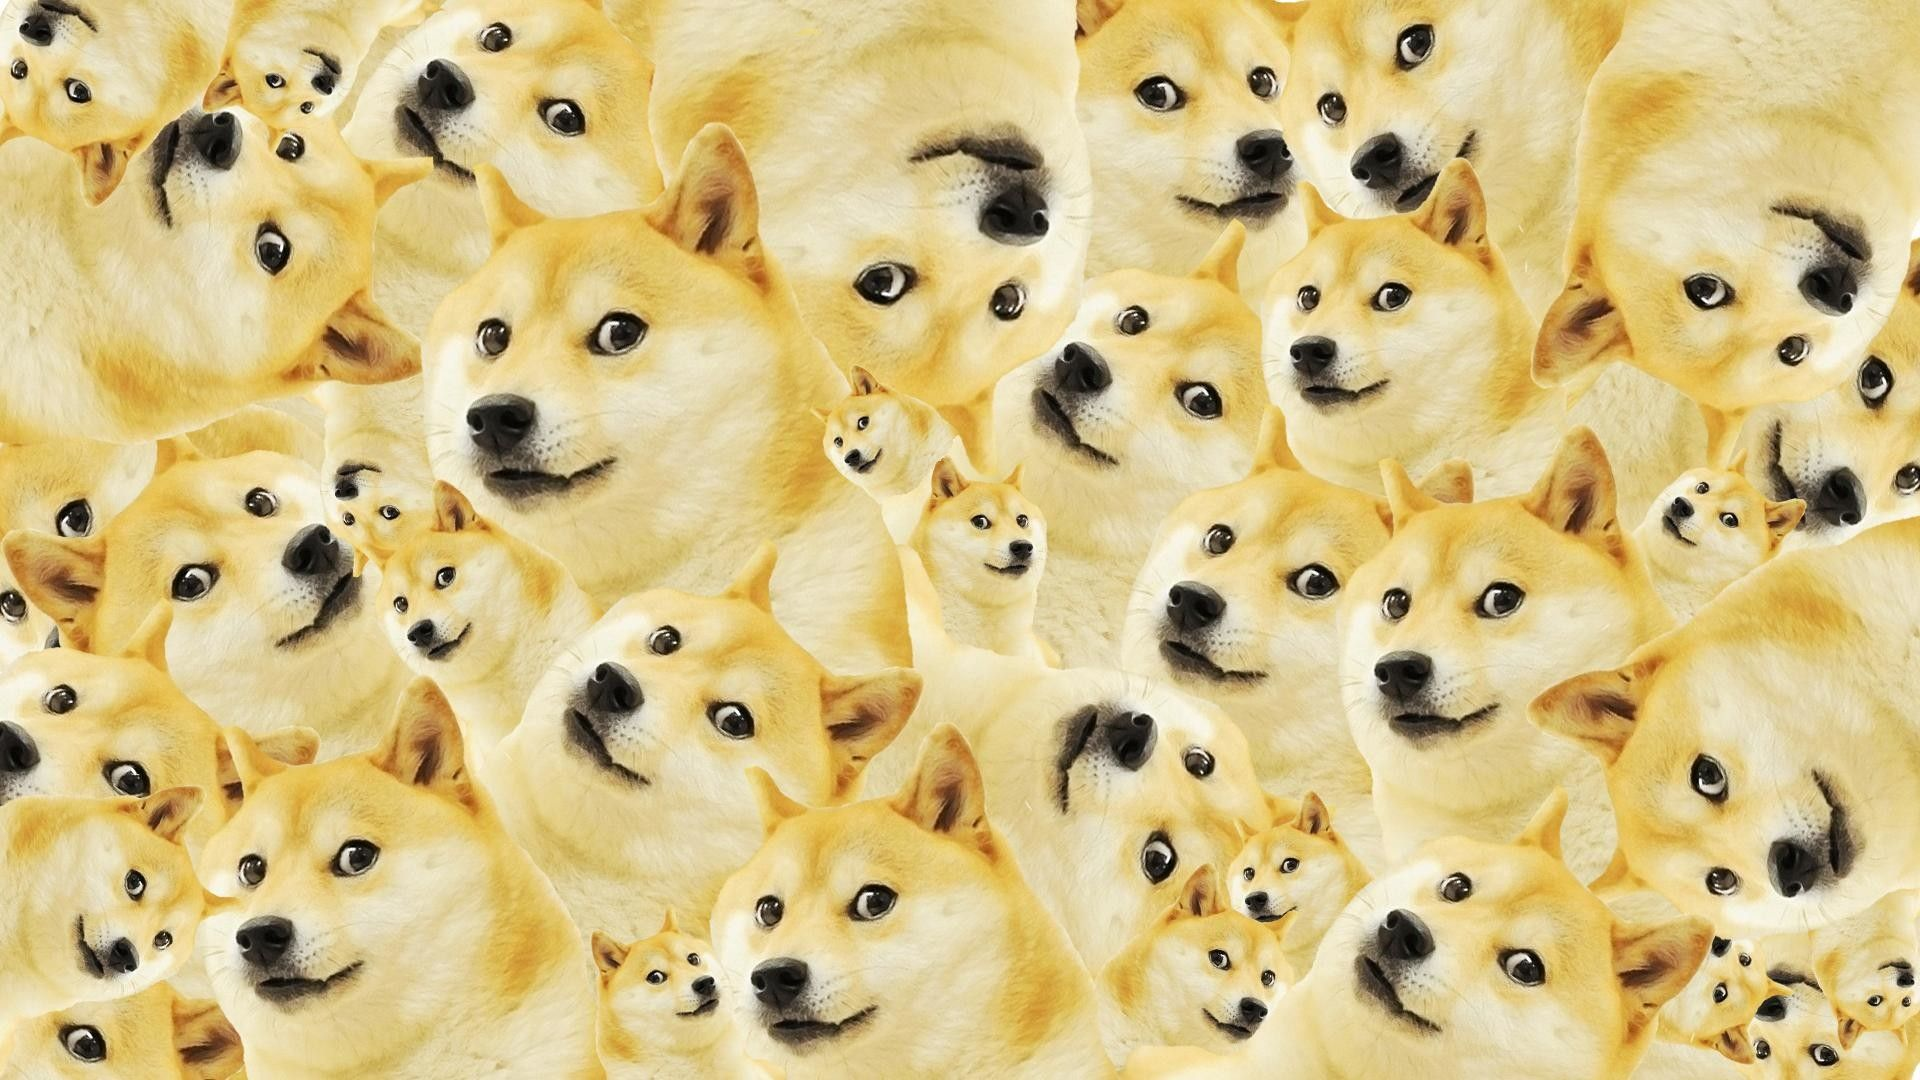 Doge Wallpapers Top Free Doge Backgrounds Wallpaperaccess